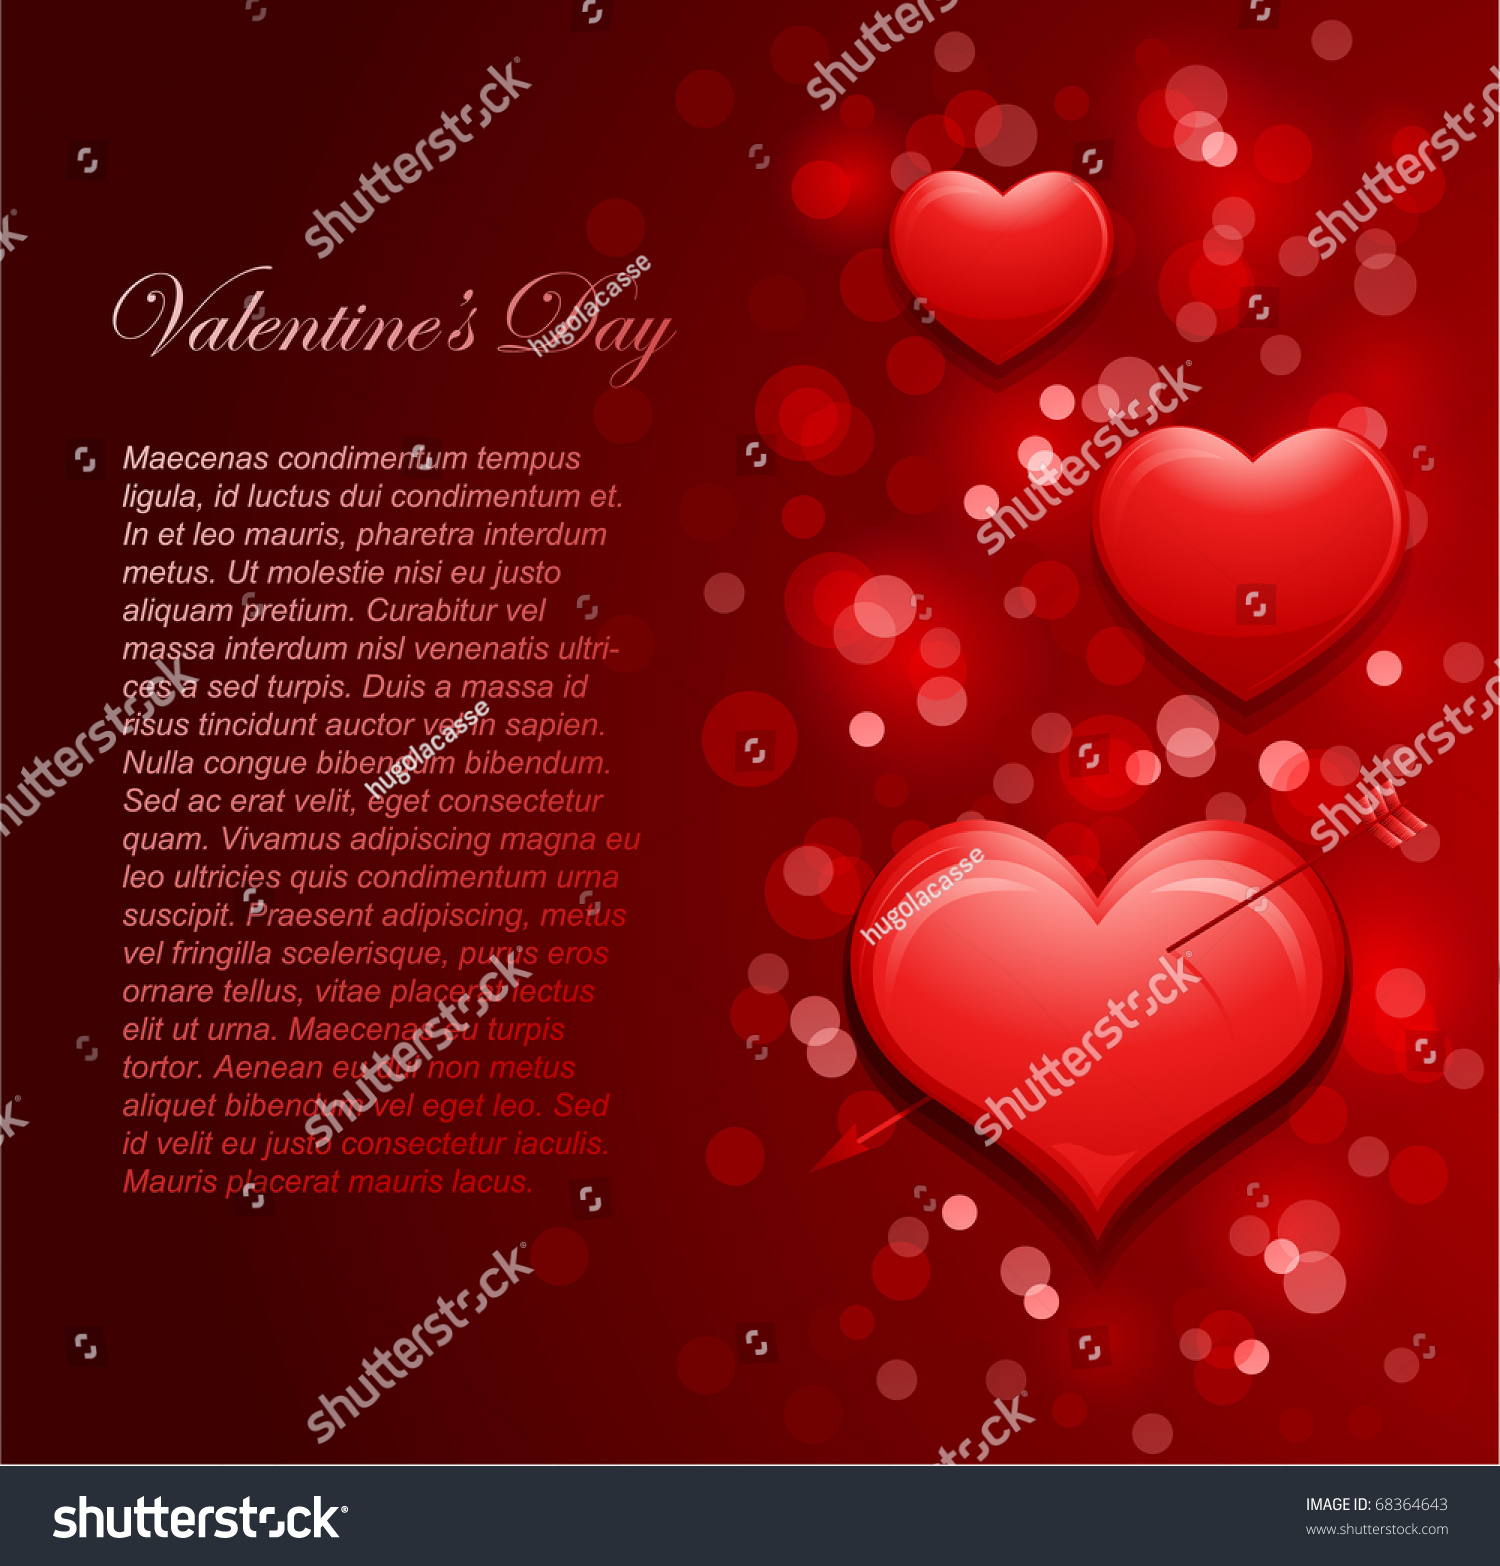 happy valentines day letter with defocused lights and hearts in background